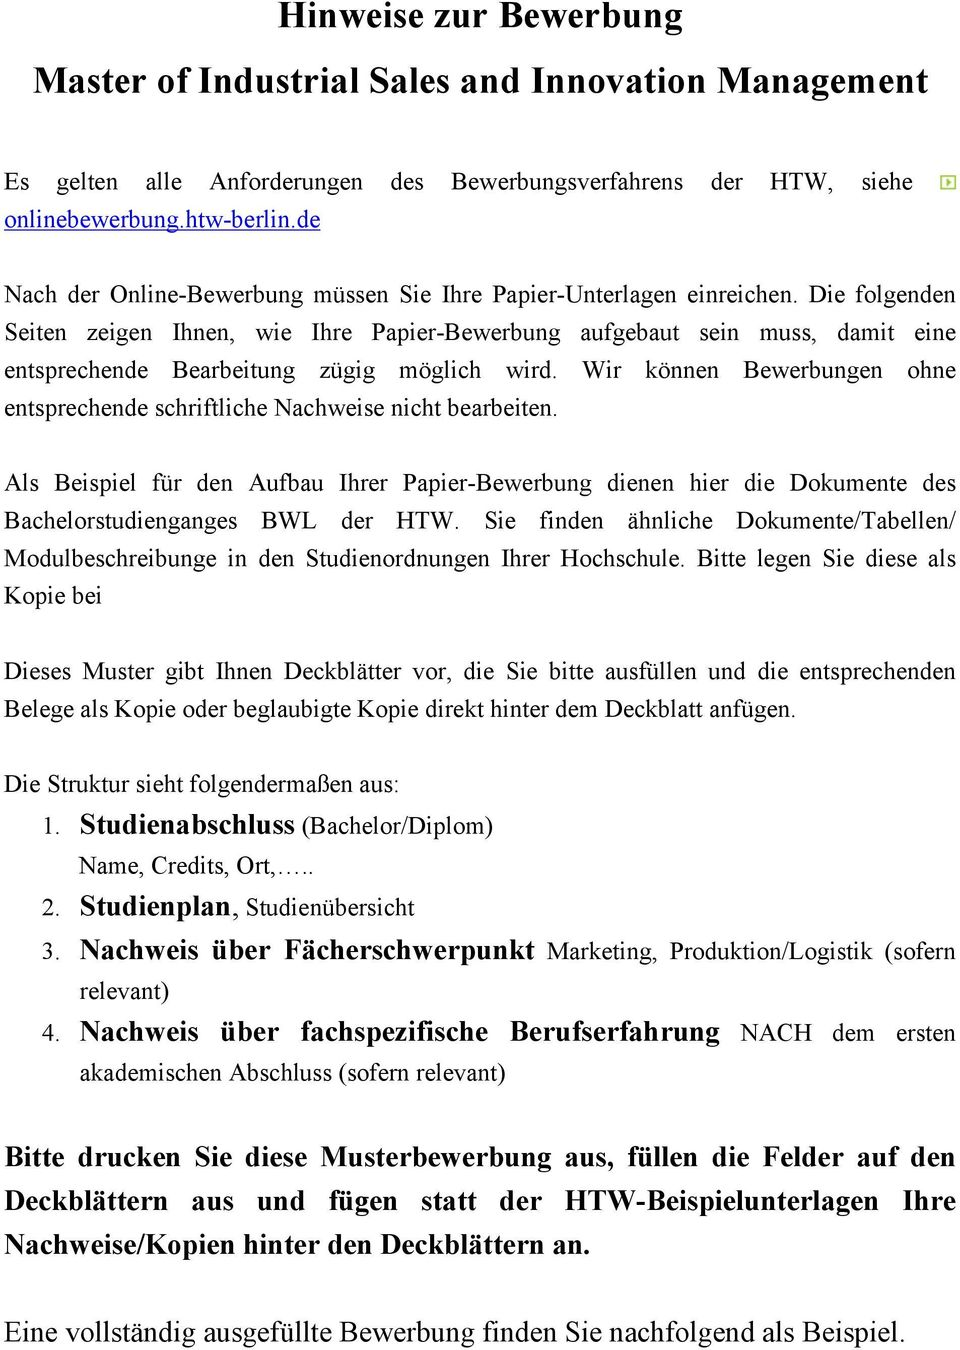 Hinweise zur bewerbung master of industrial sales and for Master ohne nc bwl